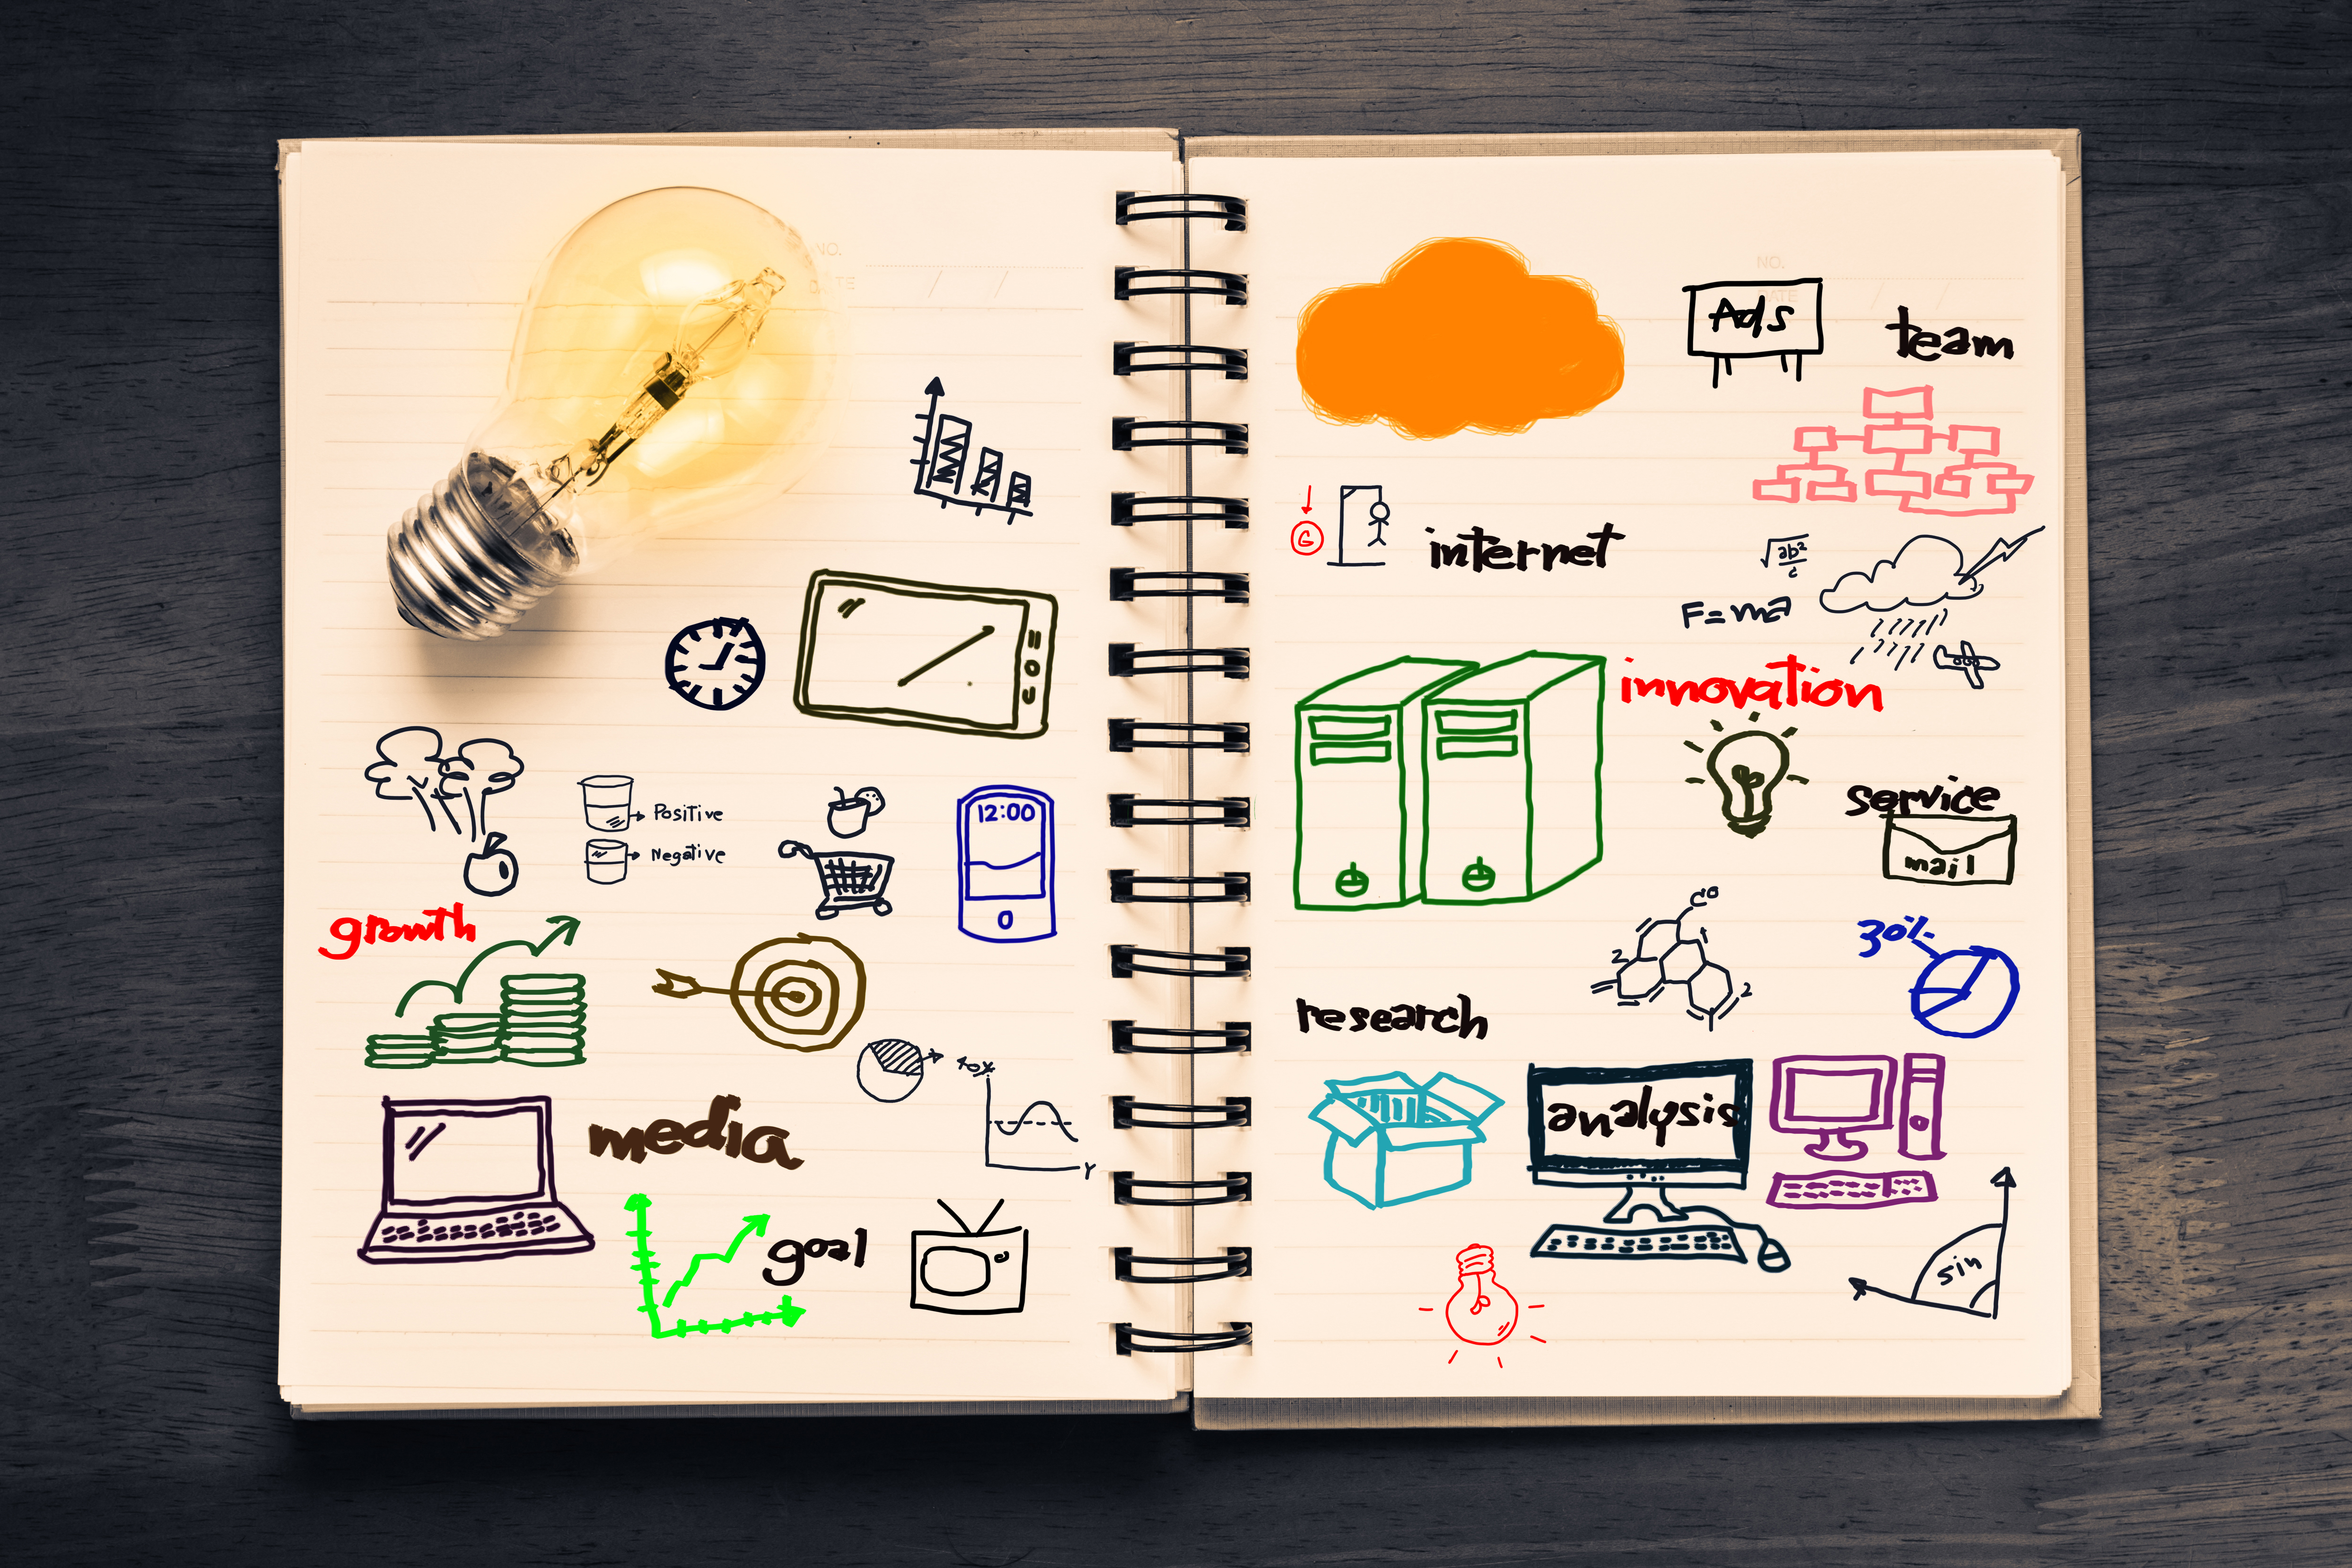 How to Keep Your Brand Creation Process on Point